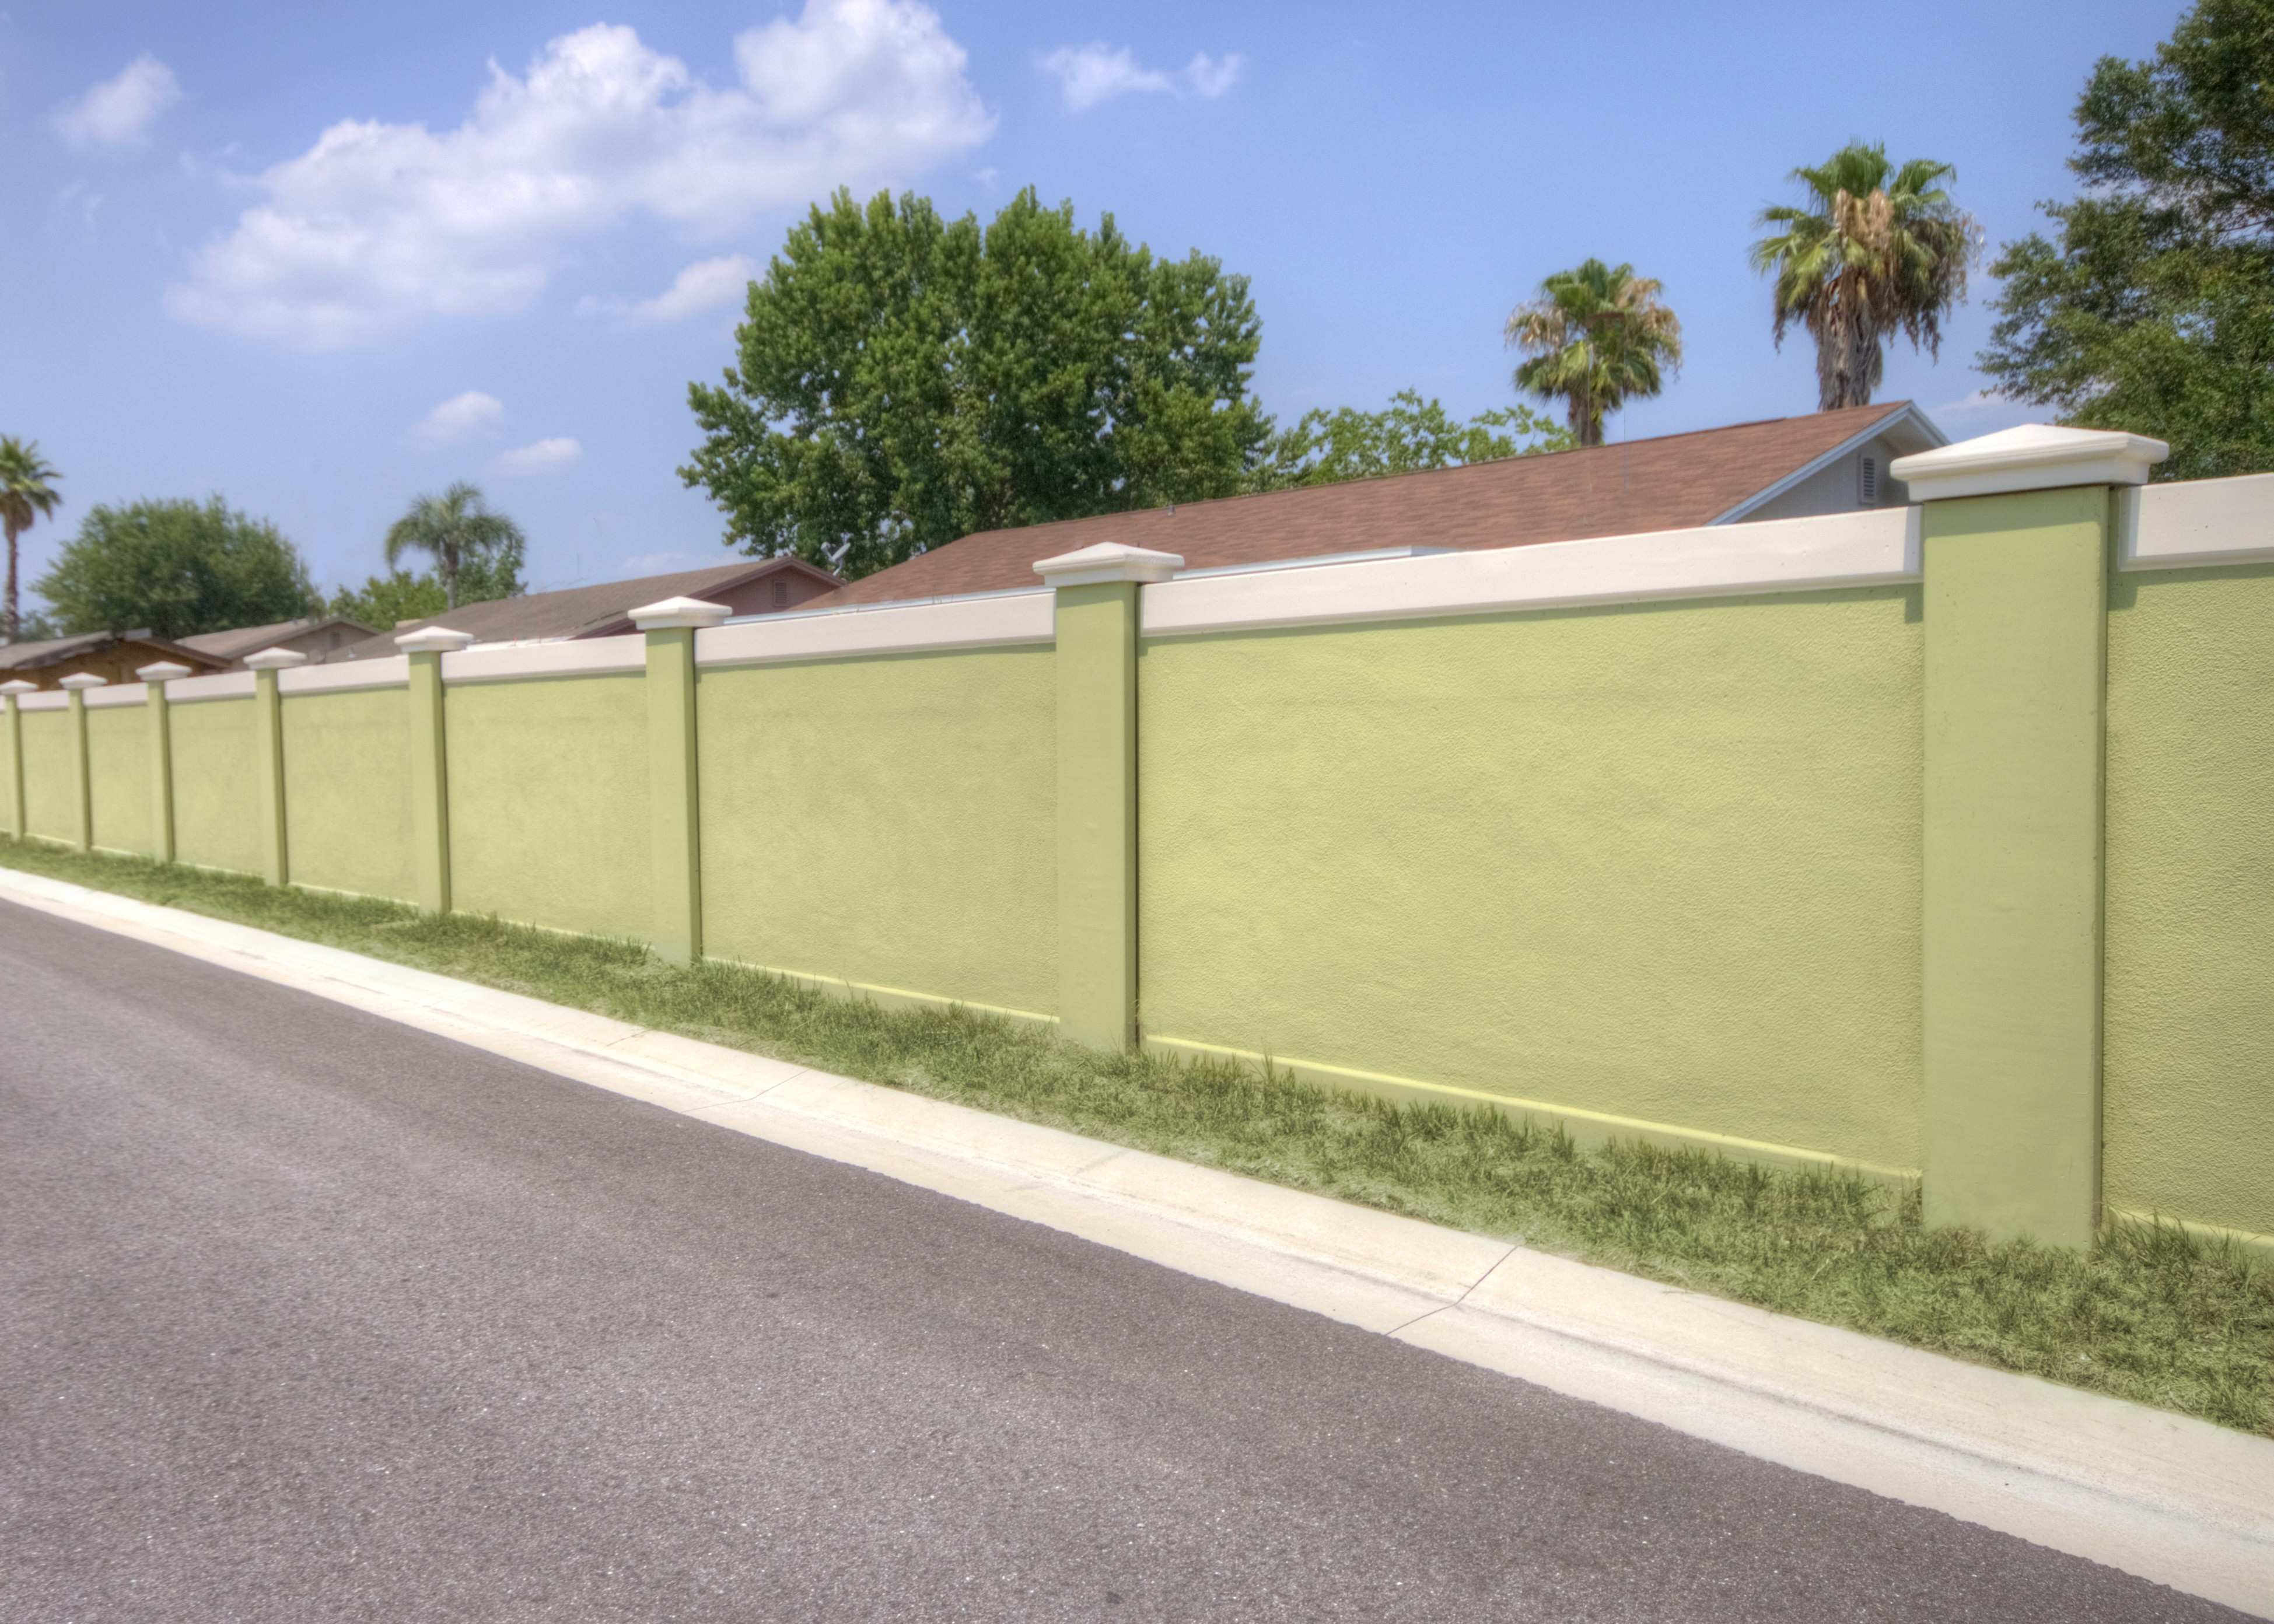 Appealing Wall Fence Designs For Homes Best Picture